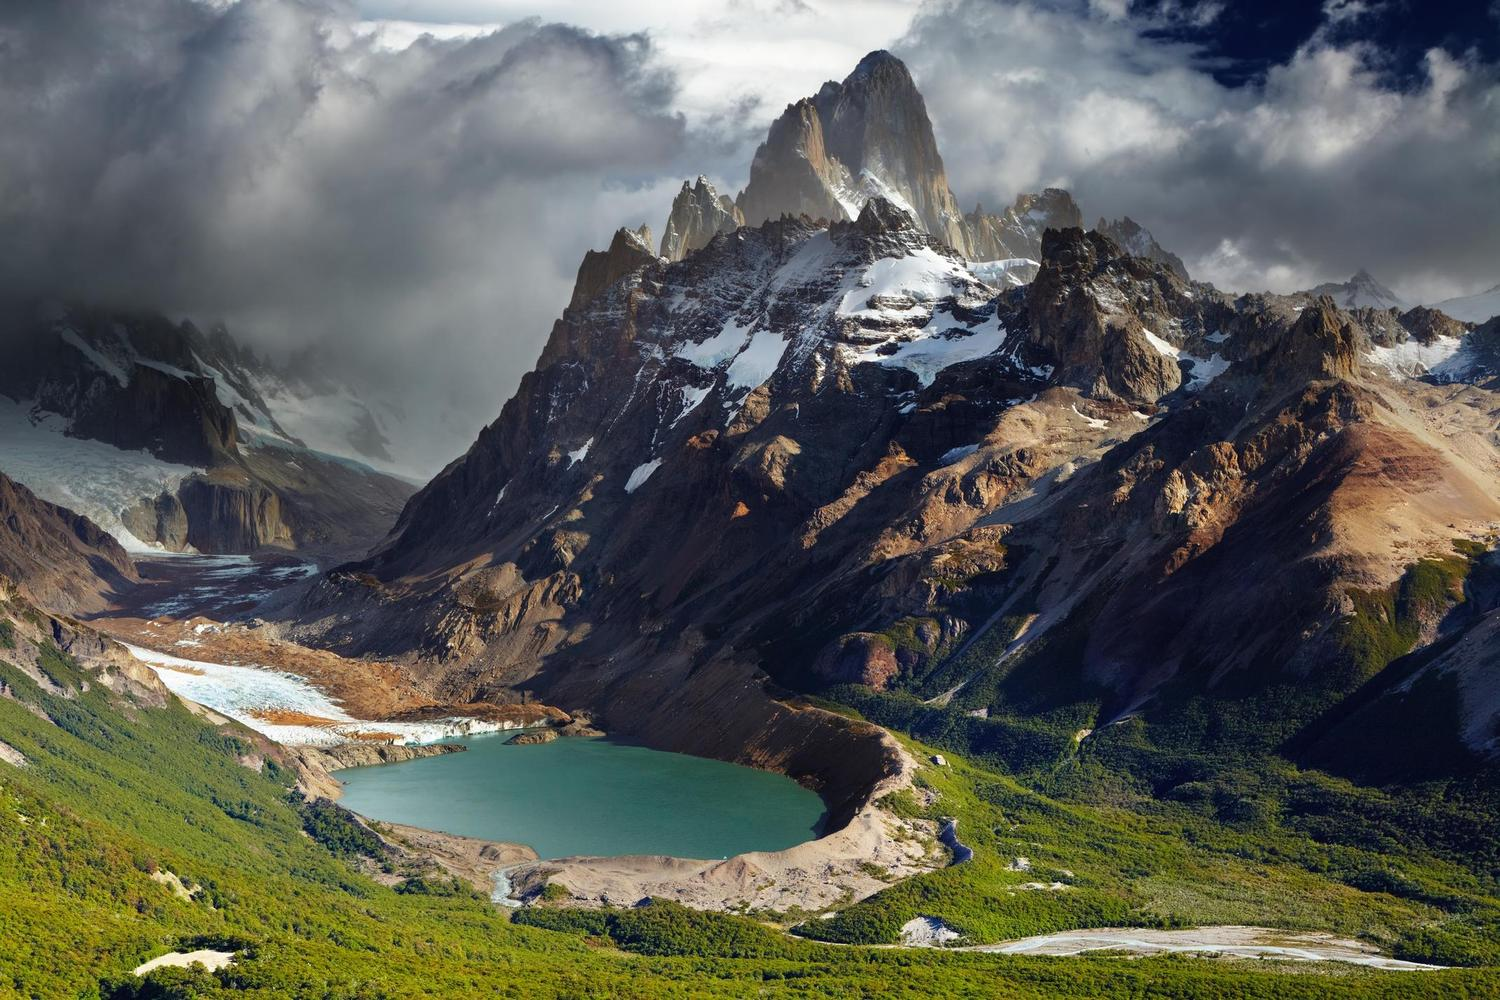 The fantastic mountain landscapes of Fitzroy in Argentine Patagonia